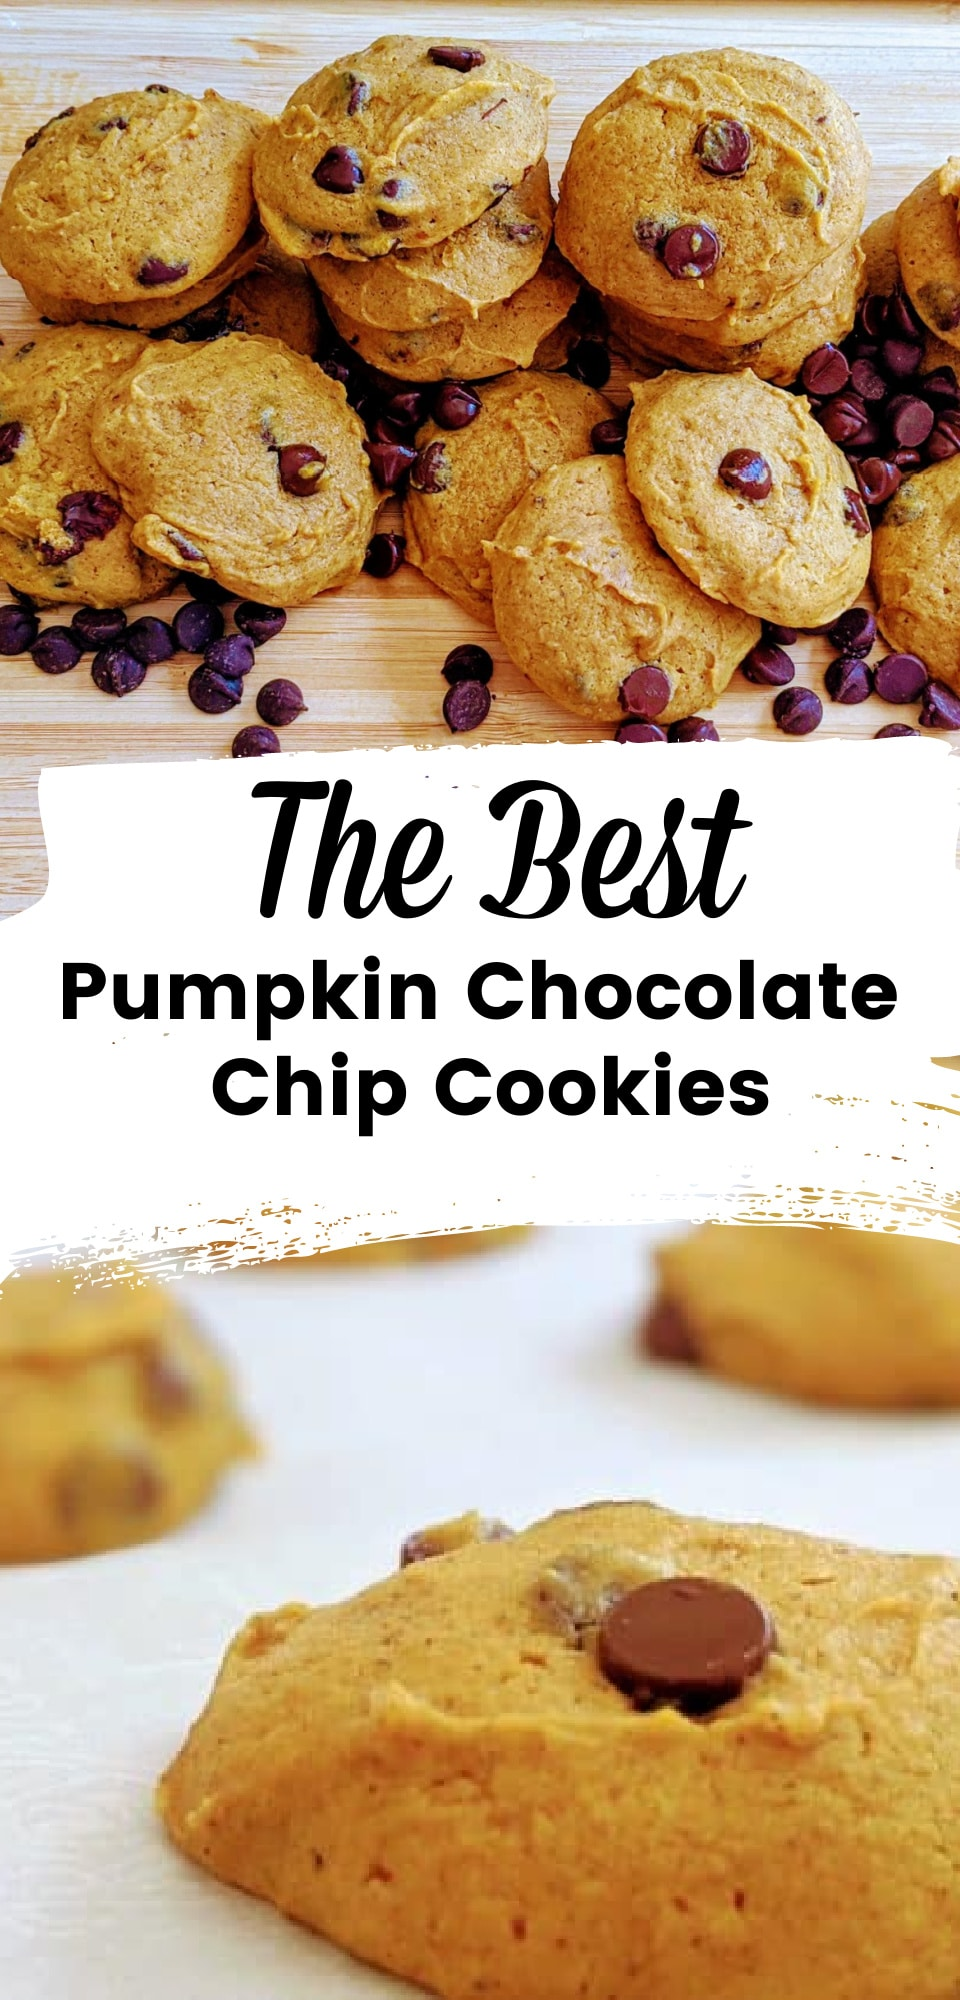 Pumpkin chocolate chip cookies are a fall essential - this recipe creates a soft pumpkin cookie with an amazing blend of fall spices. via @clarkscondensed